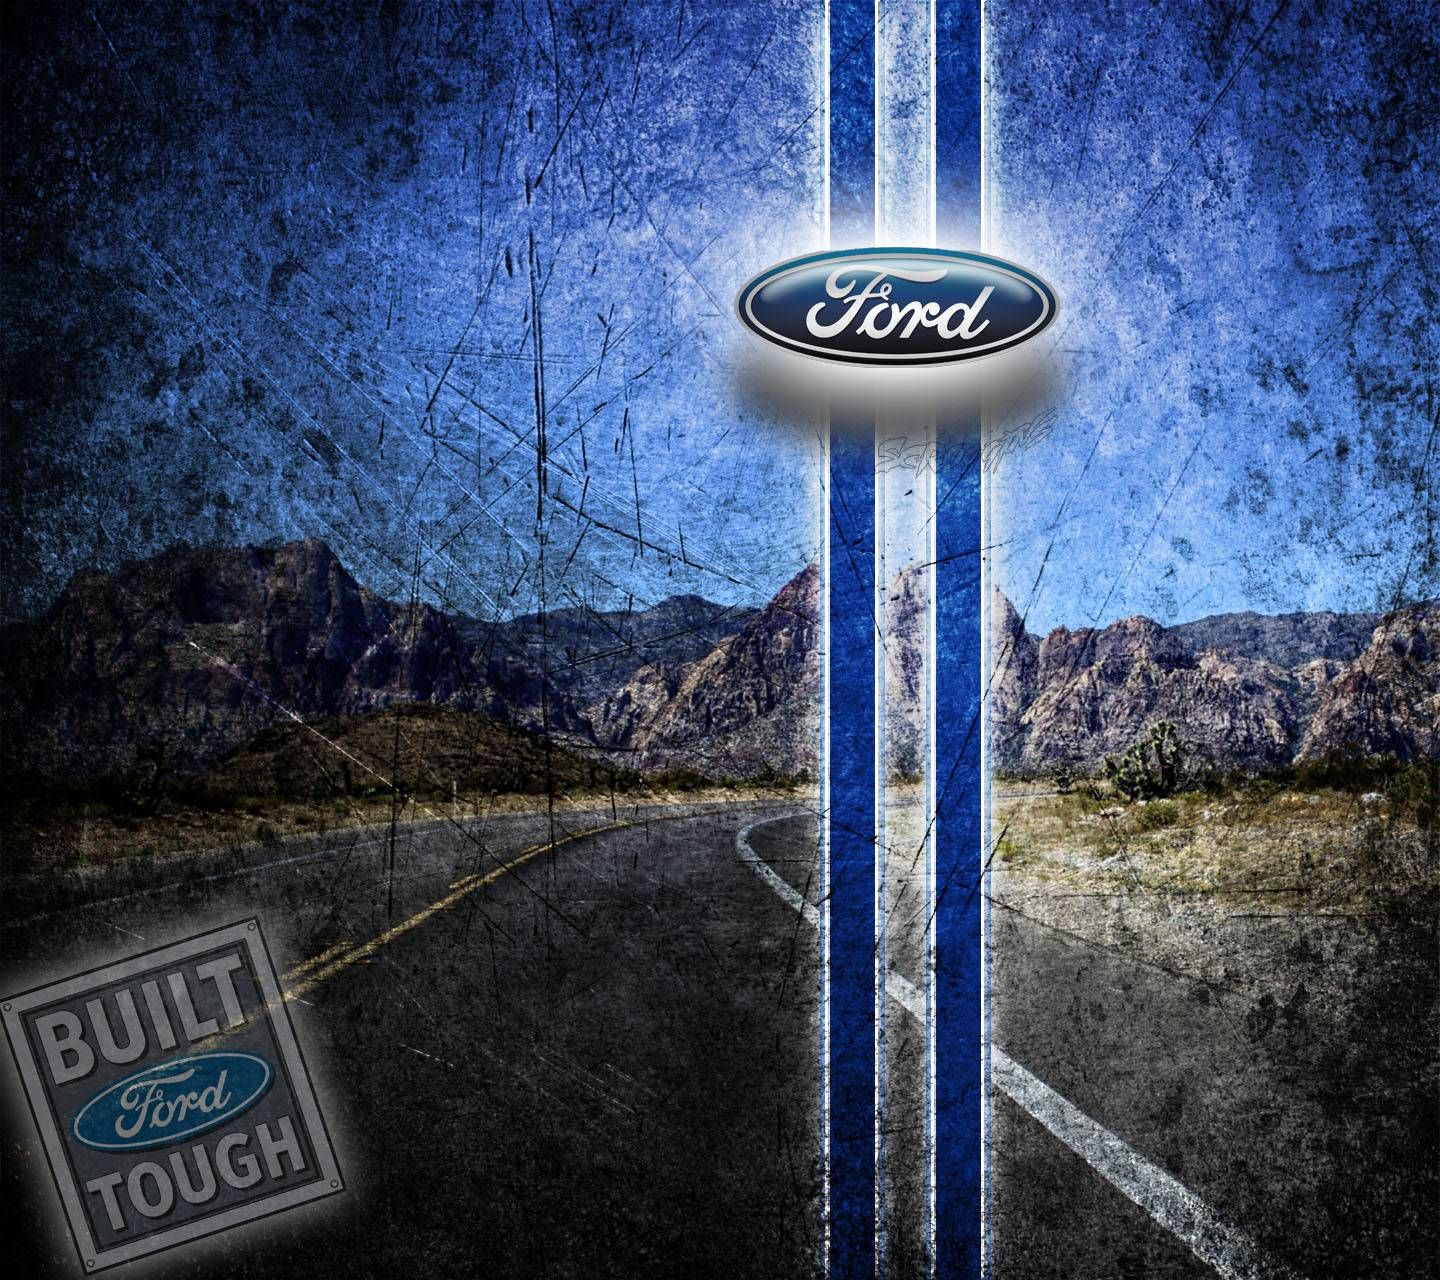 Download Ford Tough Wallpaper By Jansingjames 4a Free On Zedge Now Browse Millions Of Popular Blue Wallpapers And Rington Wallpaper Built Ford Tough Ford